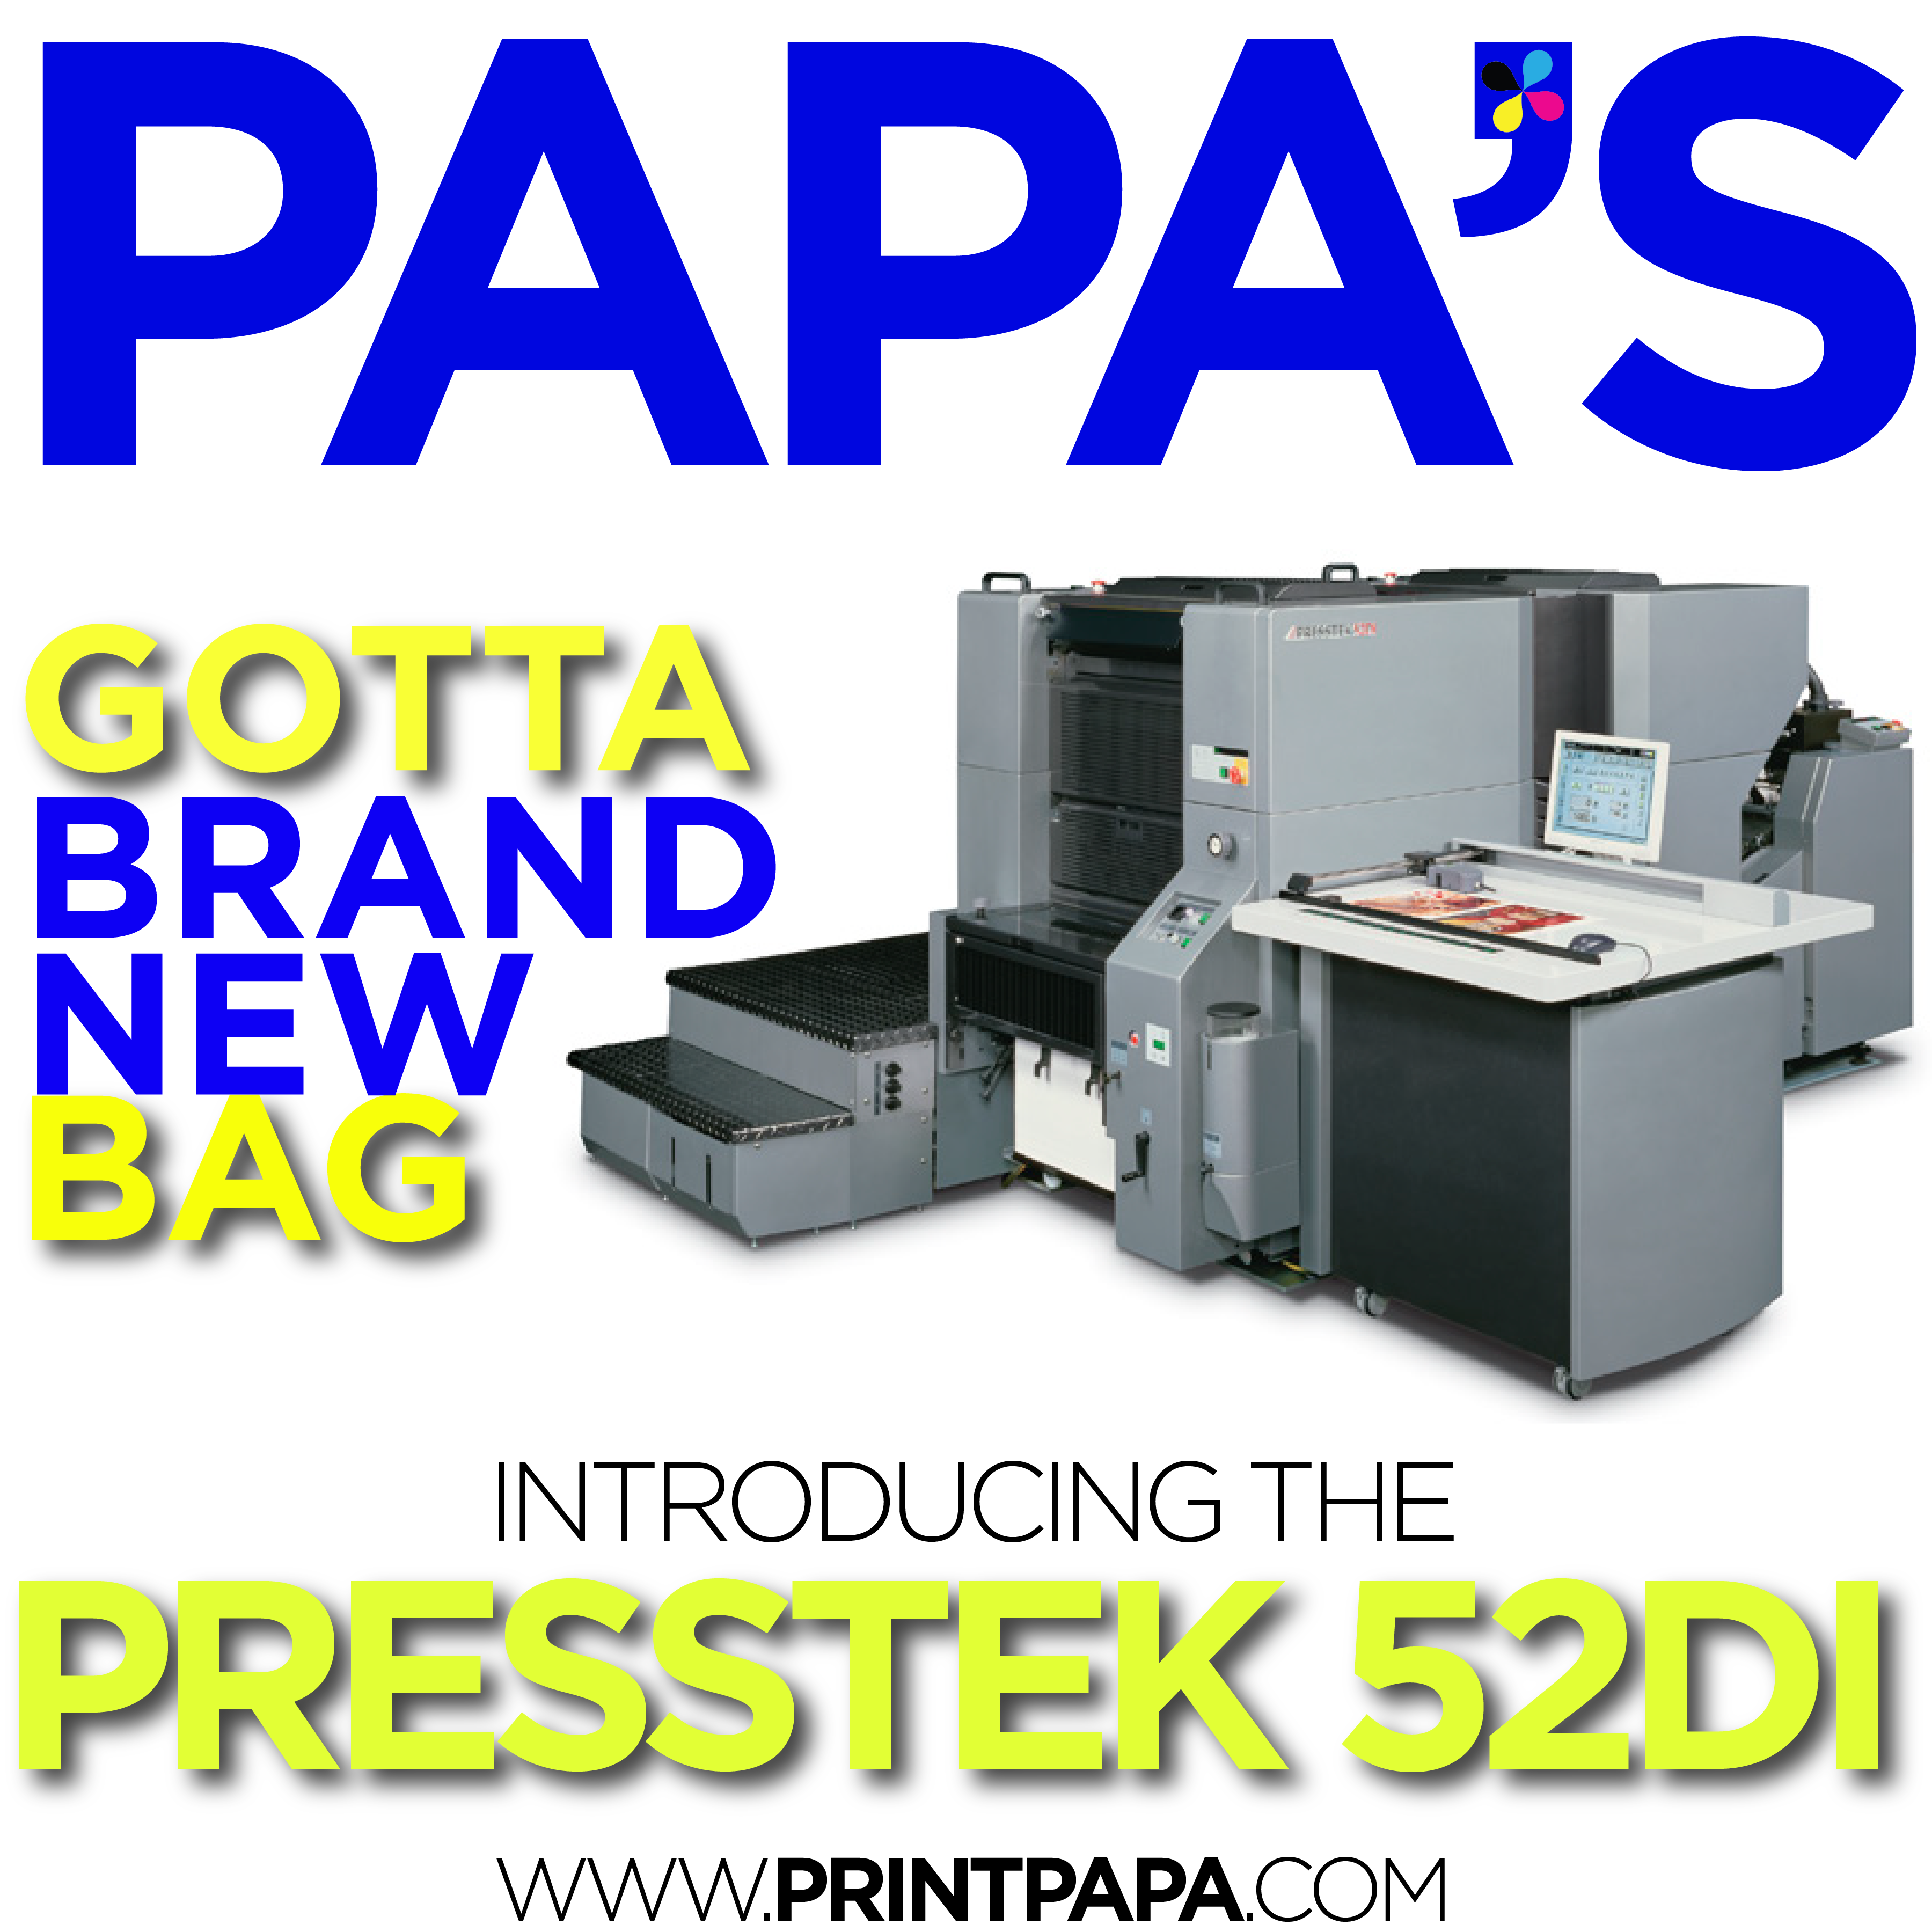 Full color printing company - The Presstek 52di Is A Highly Automated 52cm Landscape Sheetfed Four Color Digital Offset Printing Press That Combines The Efficiency Of An All Digital